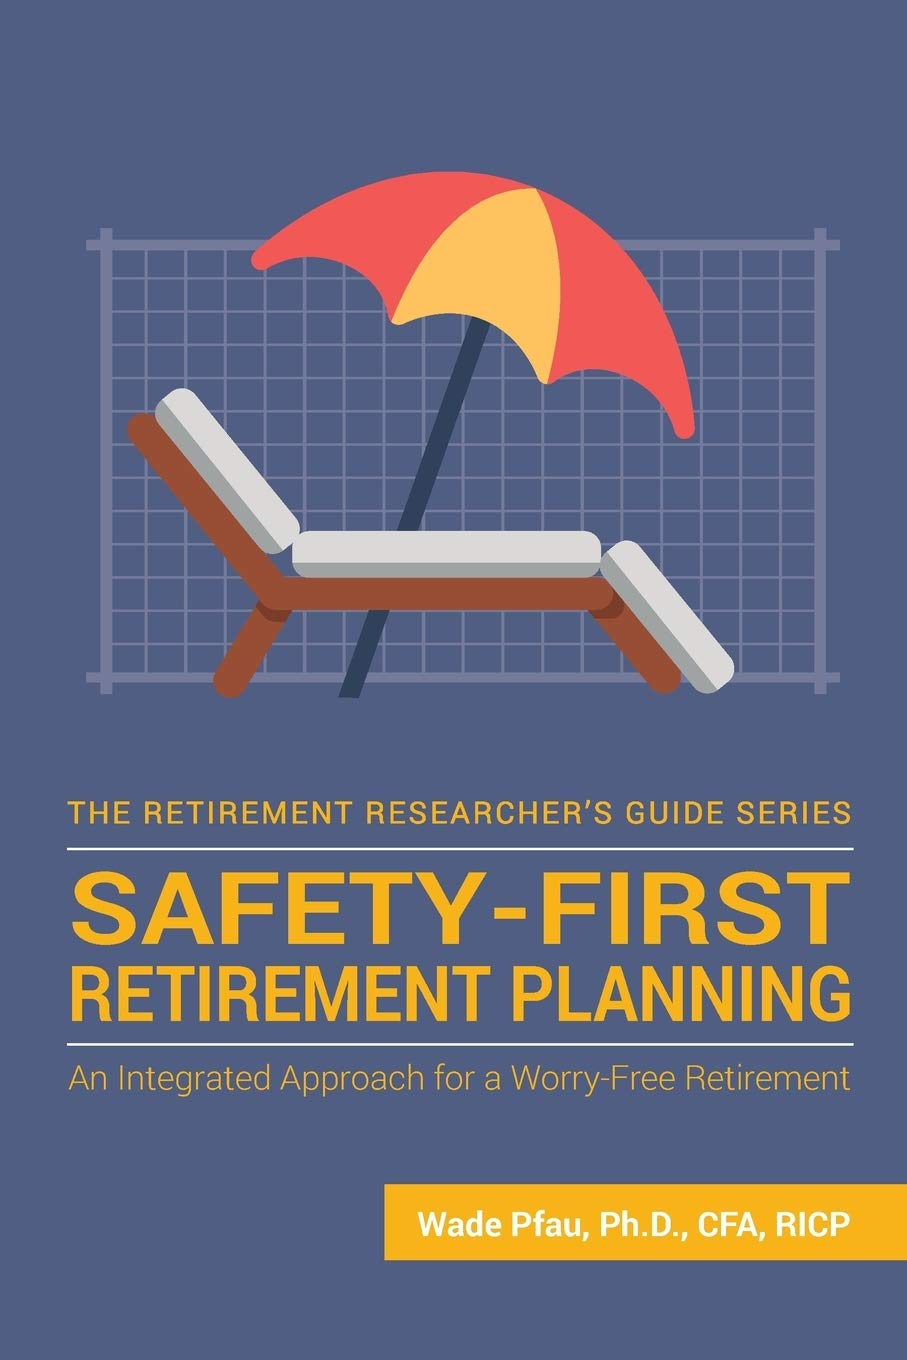 Image OfSafety-First Retirement Planning: An Integrated Approach For A Worry-Free Retirement: 3